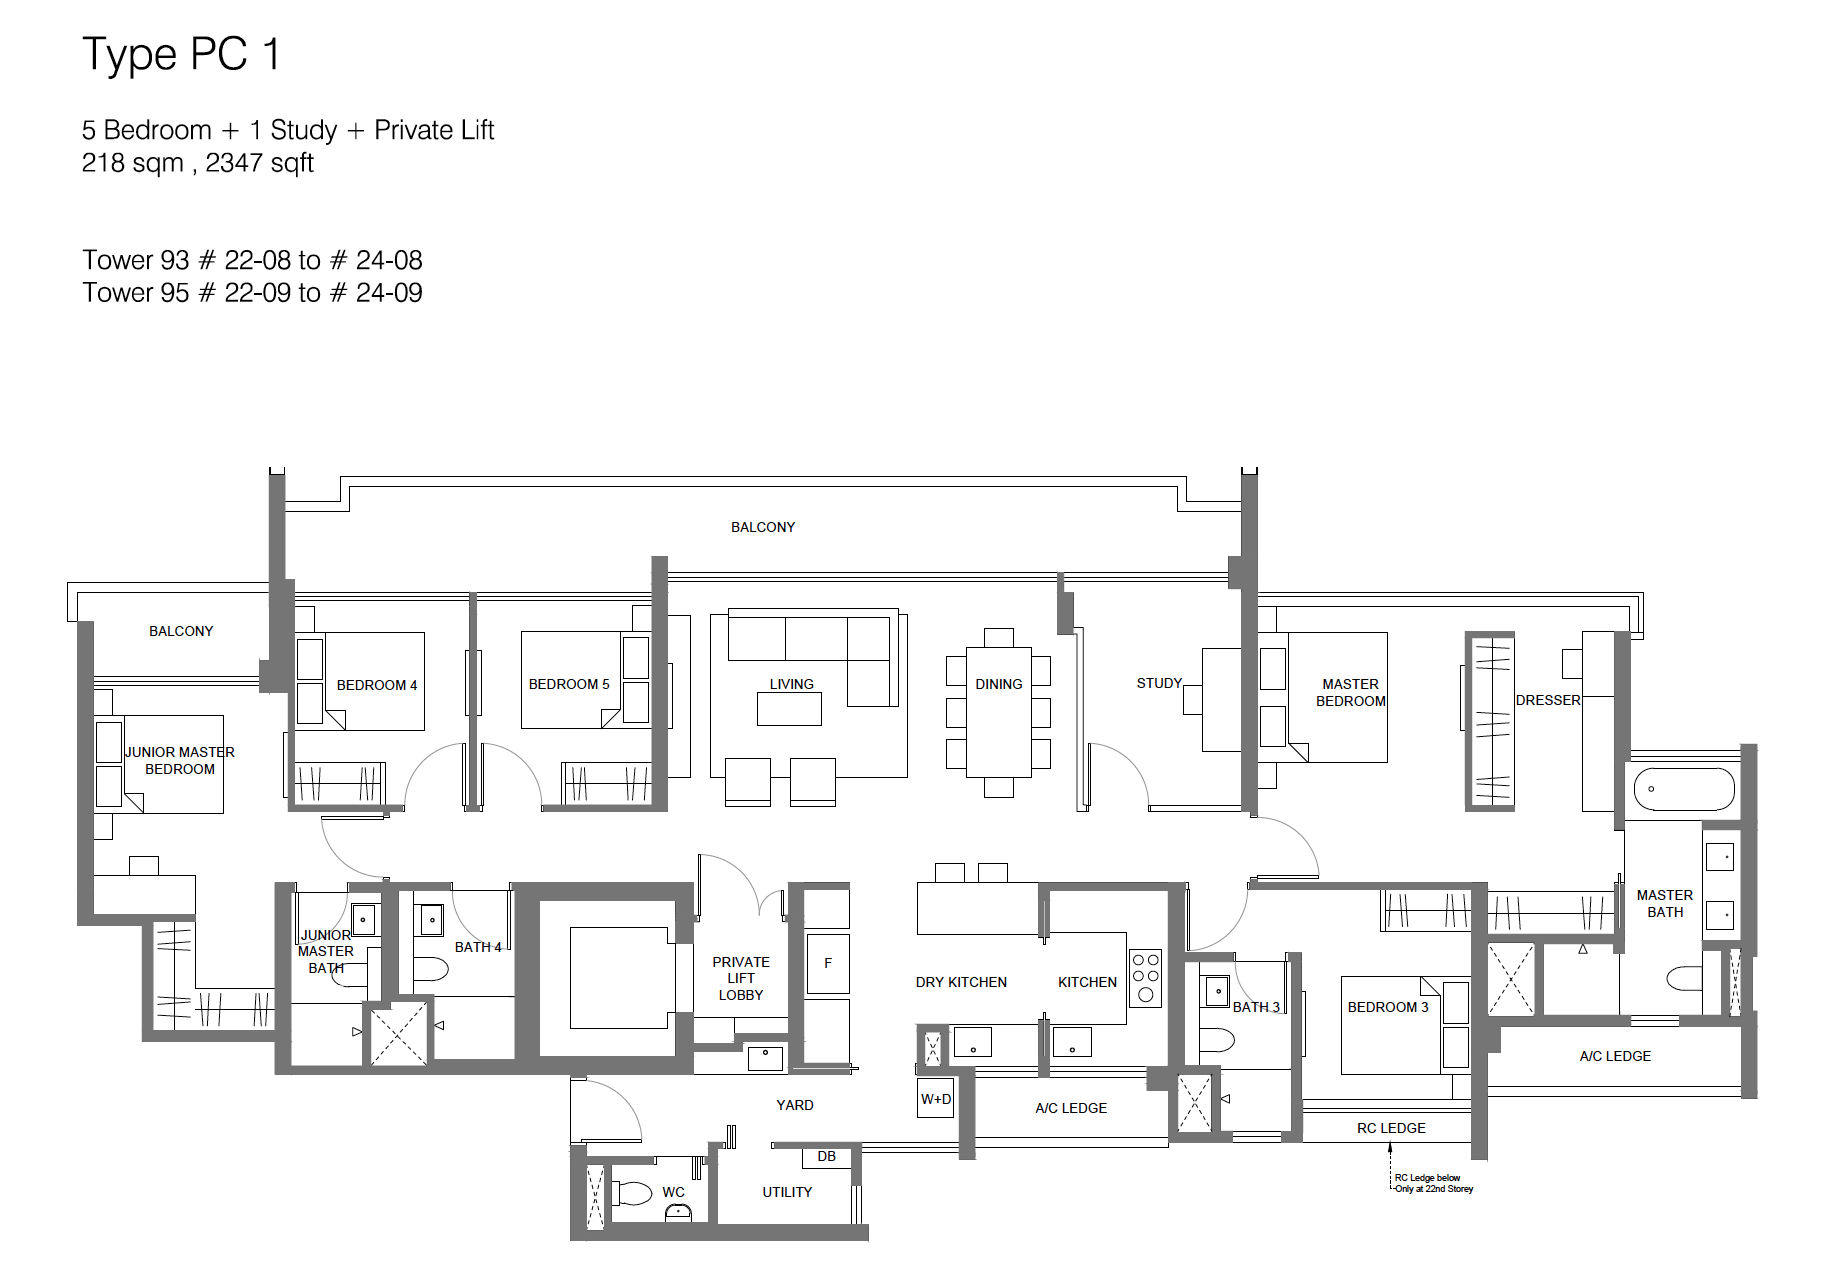 Principal Garden floor plan - 5 bedroom + study + private lift